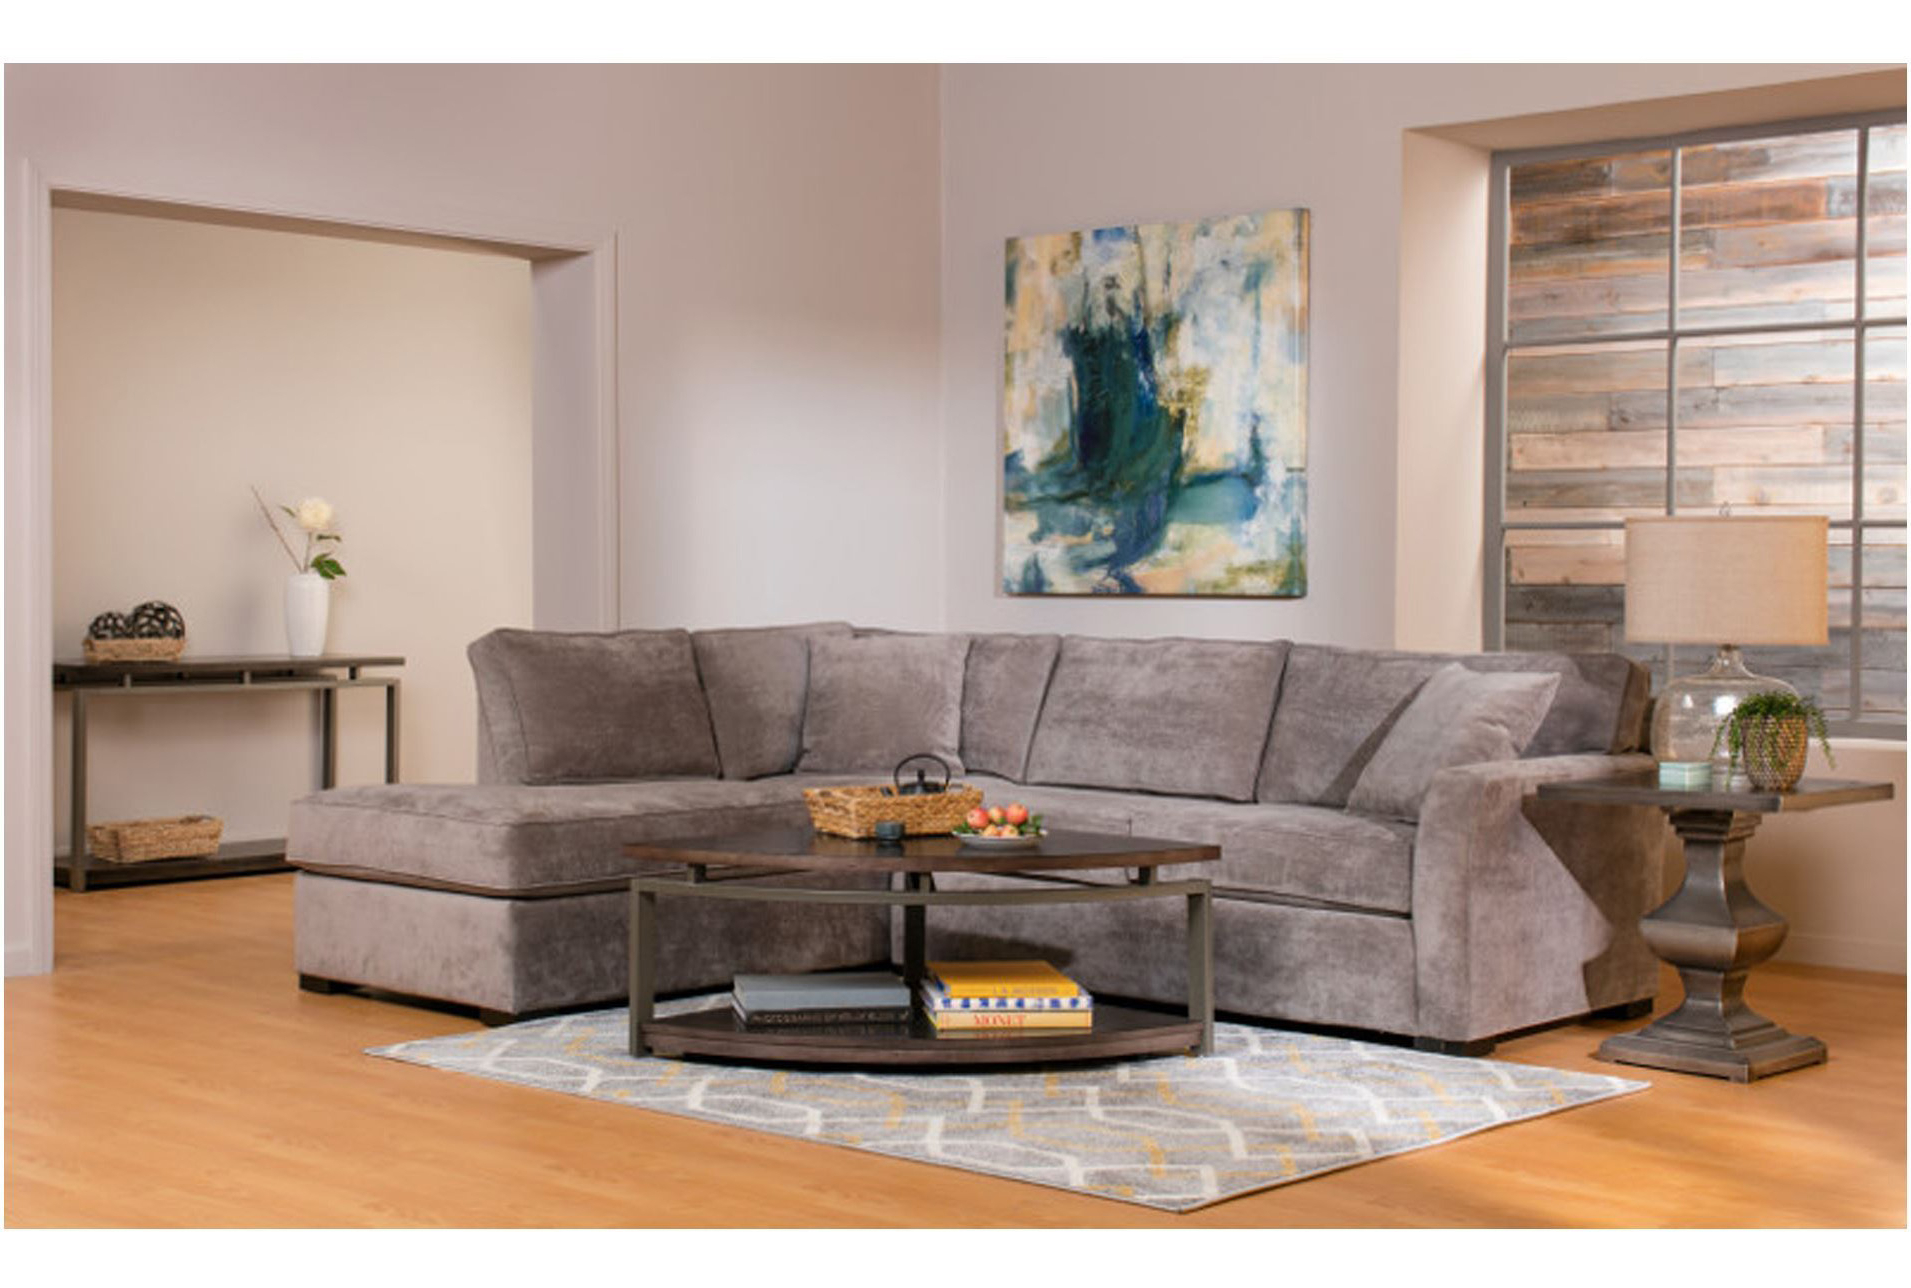 Aspen 2 Piece Sleeper Sectionals With Raf Chaise For Best And Newest Aspen 2 Piece Sleeper Sectional W/raf Chaise (Gallery 4 of 20)